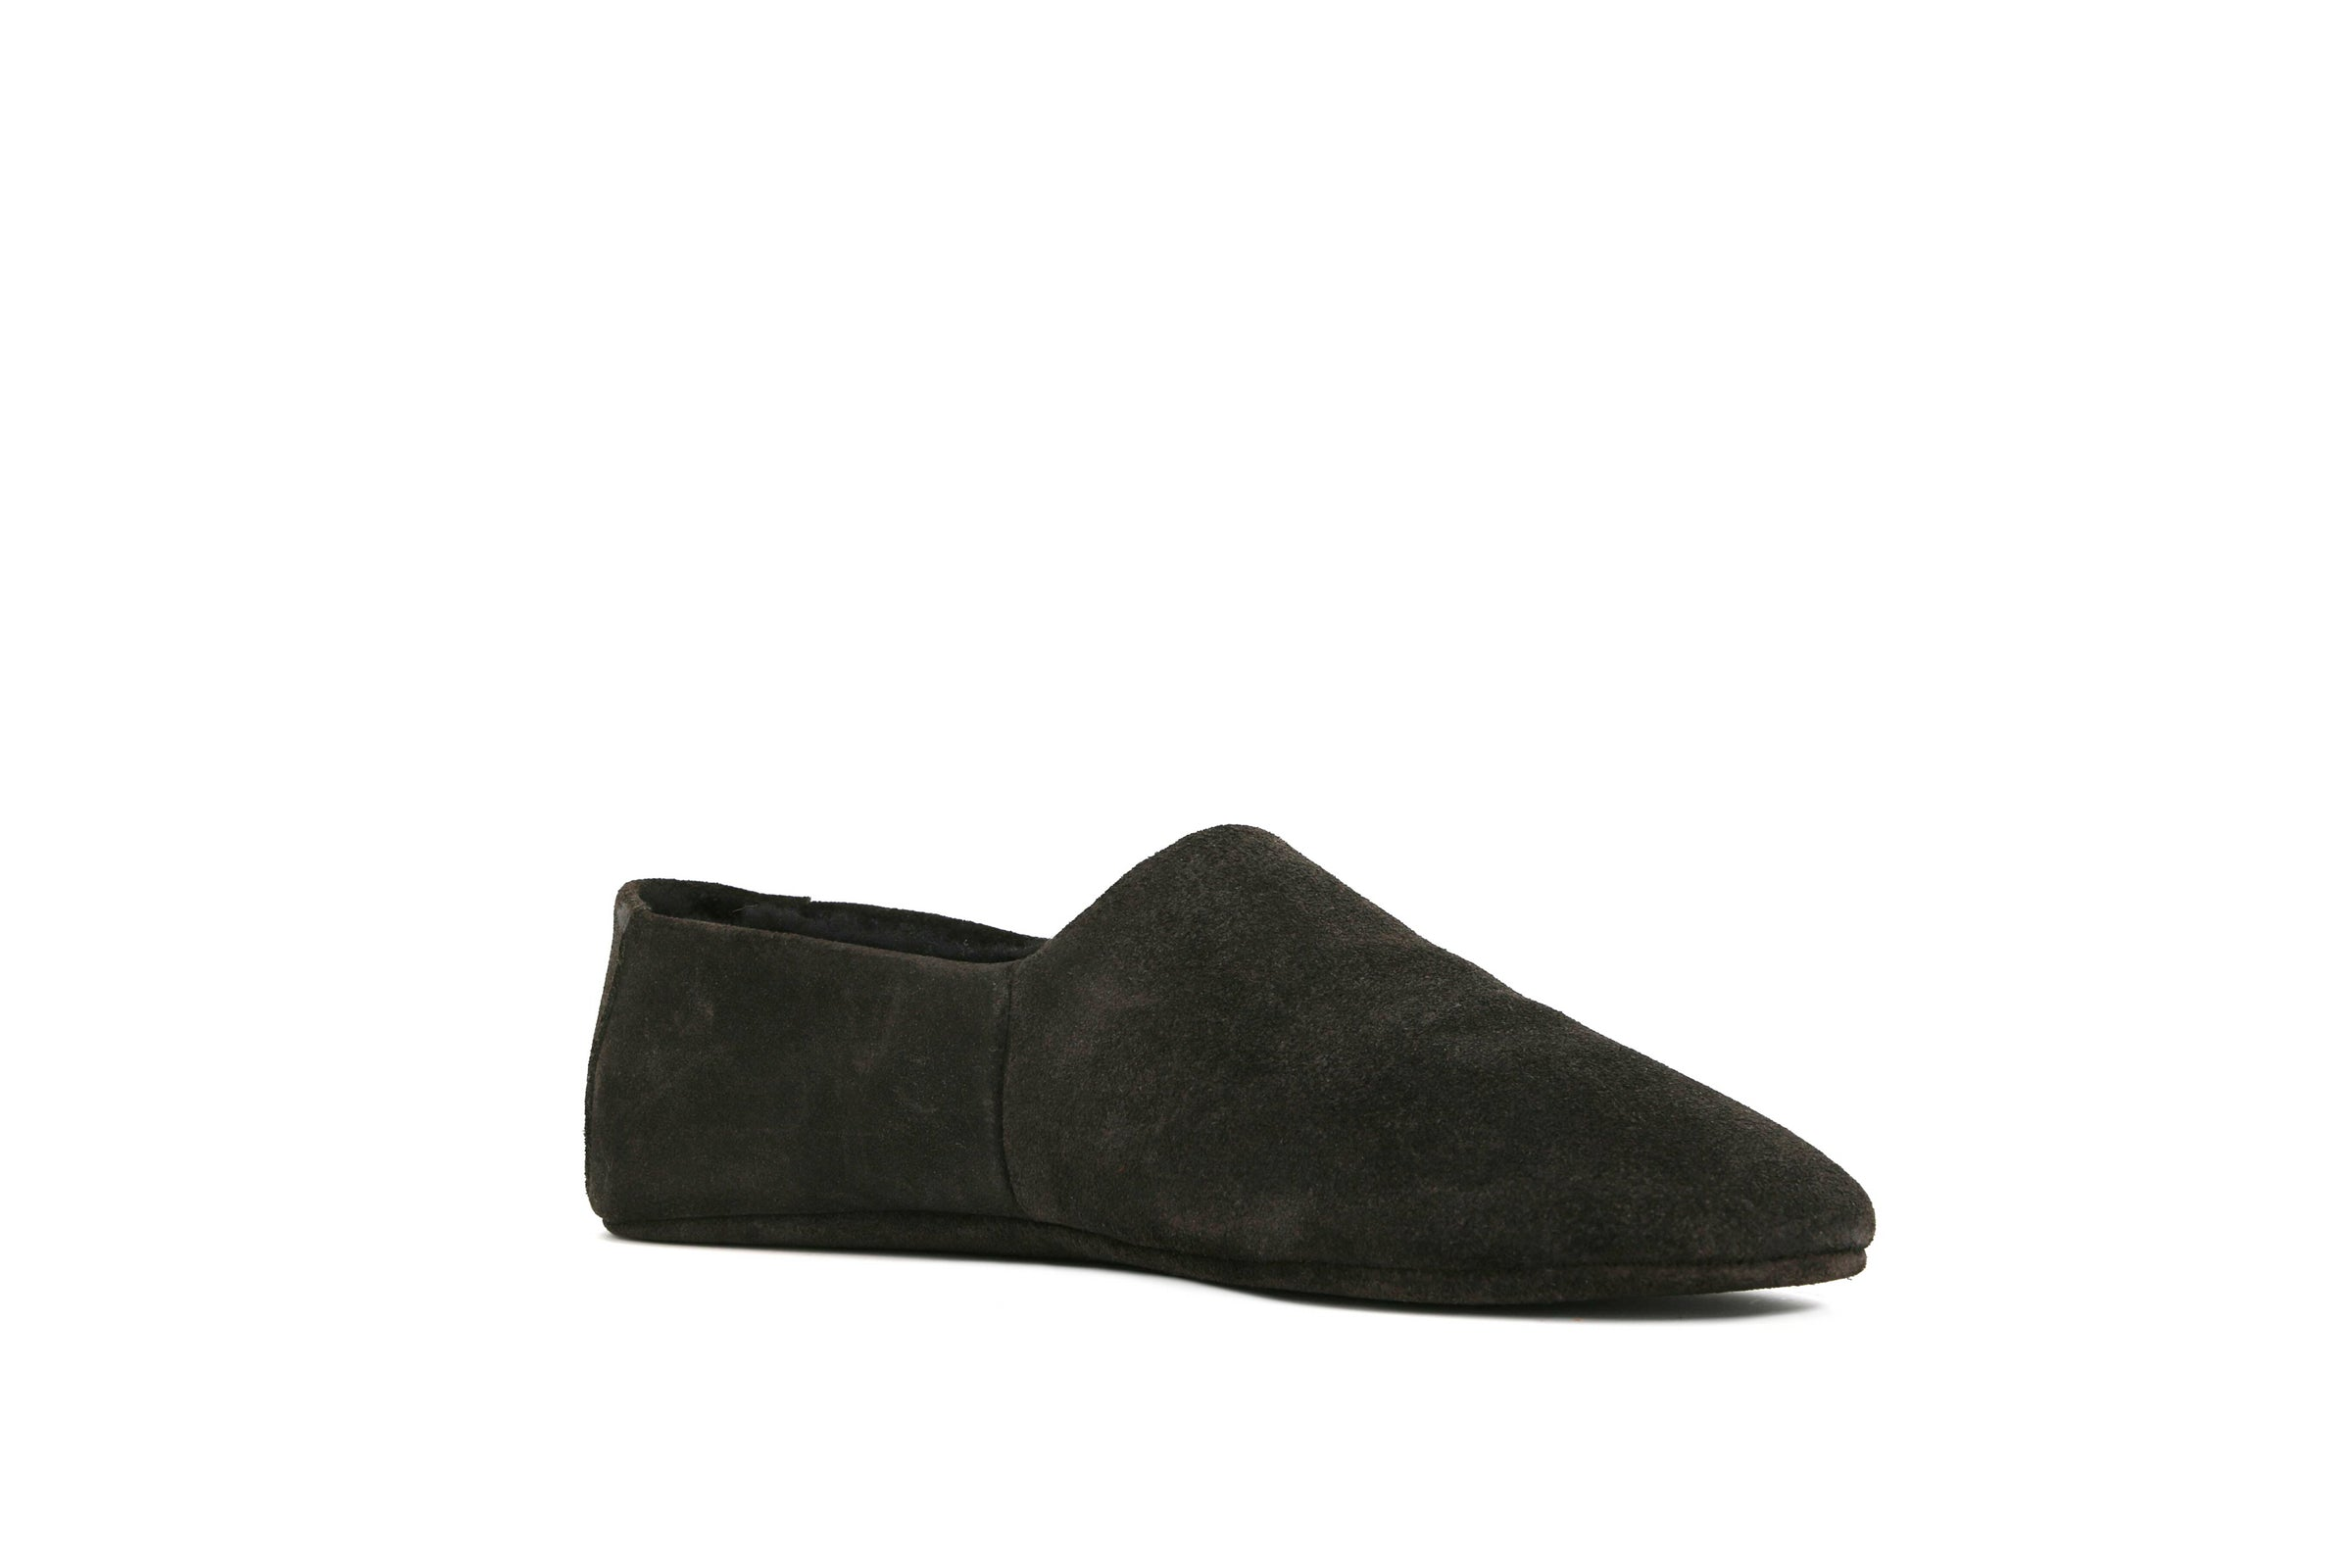 Coz Suede Loafer